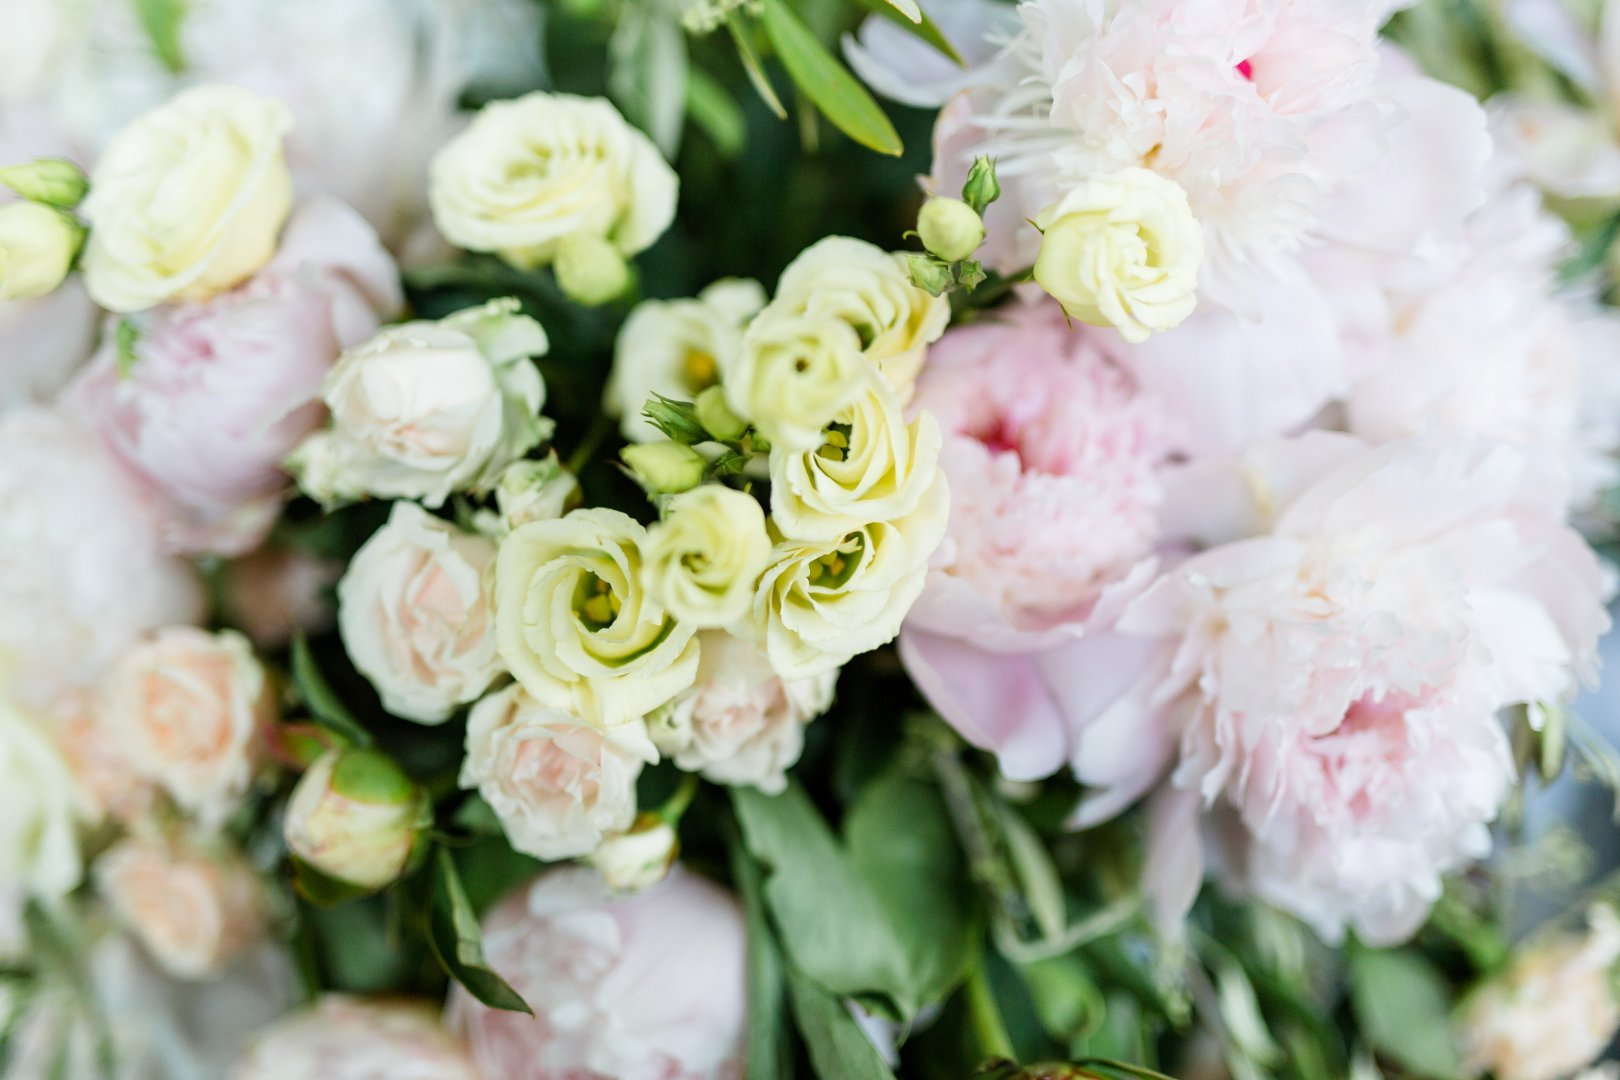 Flower Bouquet Flower Arranging Garden roses Pink Floristry Cut flowers Plant Floral design Rose Petal Flowering plant Peony Rose family Rosa × centifolia Rose order common peony persian buttercup Chinese peony Pink family Floribunda Artificial flower